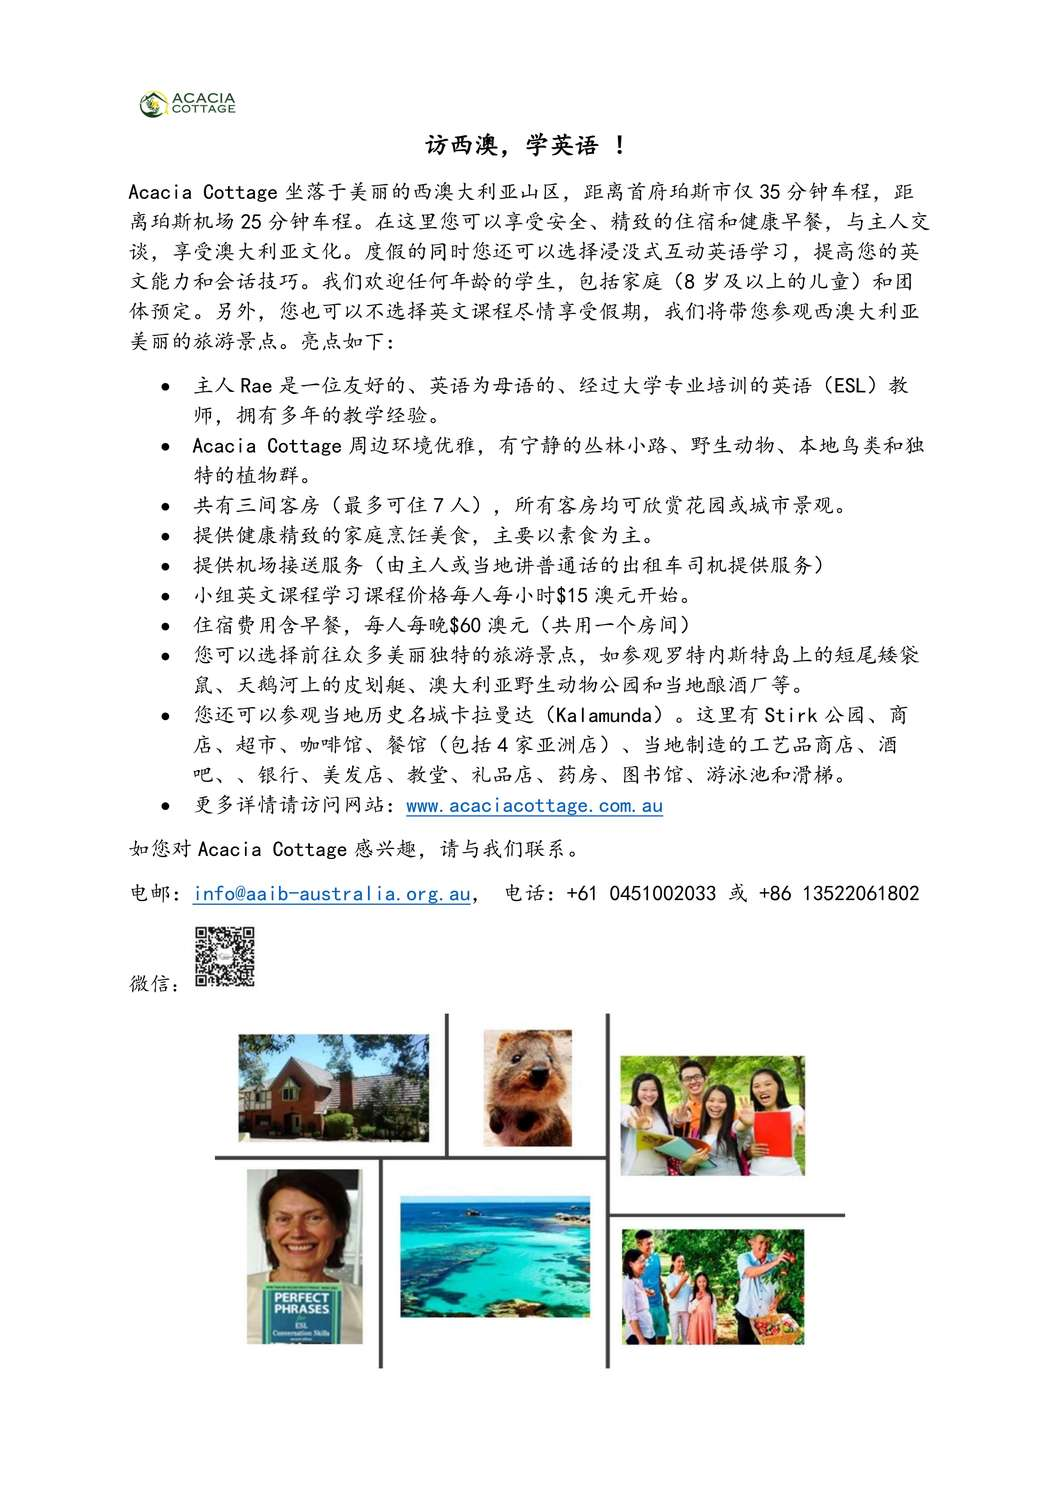 WeChat Advert Chn 20190730-1.jpg